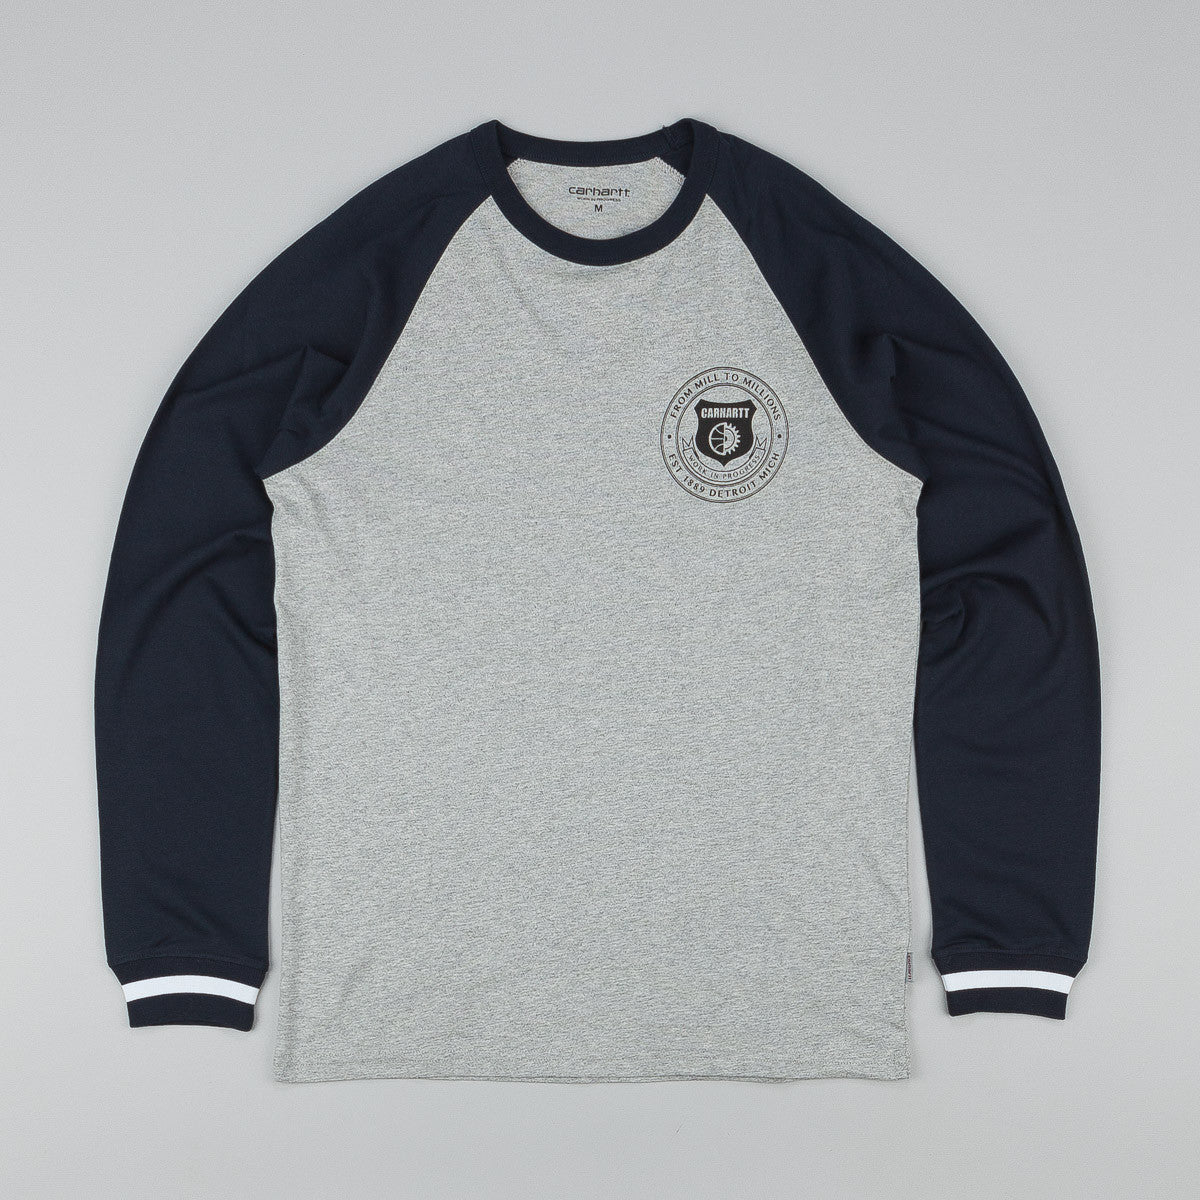 Carhartt Seal Long Sleeve T-Shirt